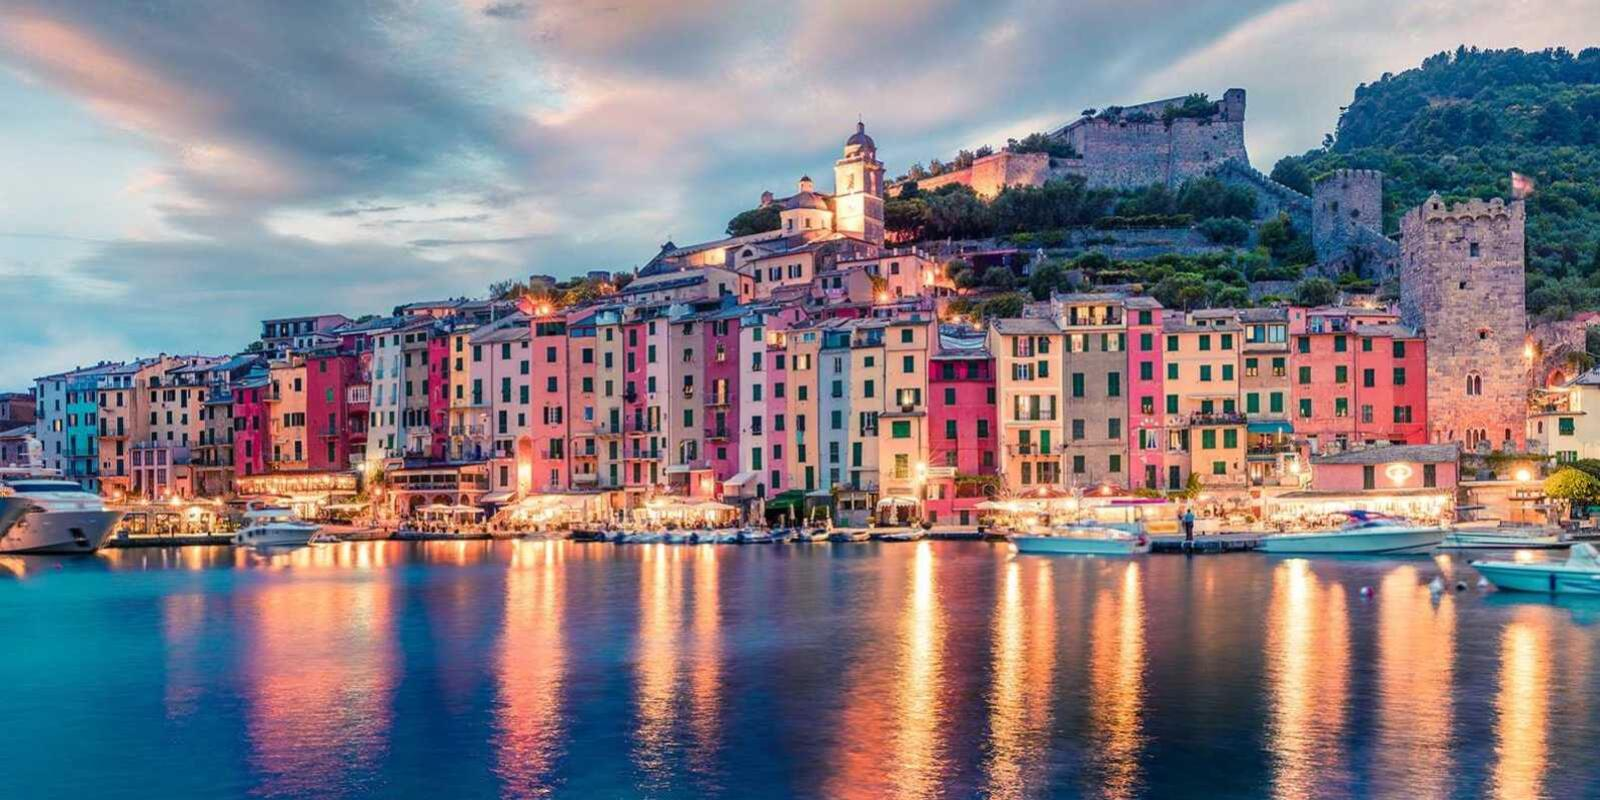 - 2 DAYS ALL INCLUSIVE - VISIT TO PORTOVENERE AND RELAXATION IN THE GULF OF POETS